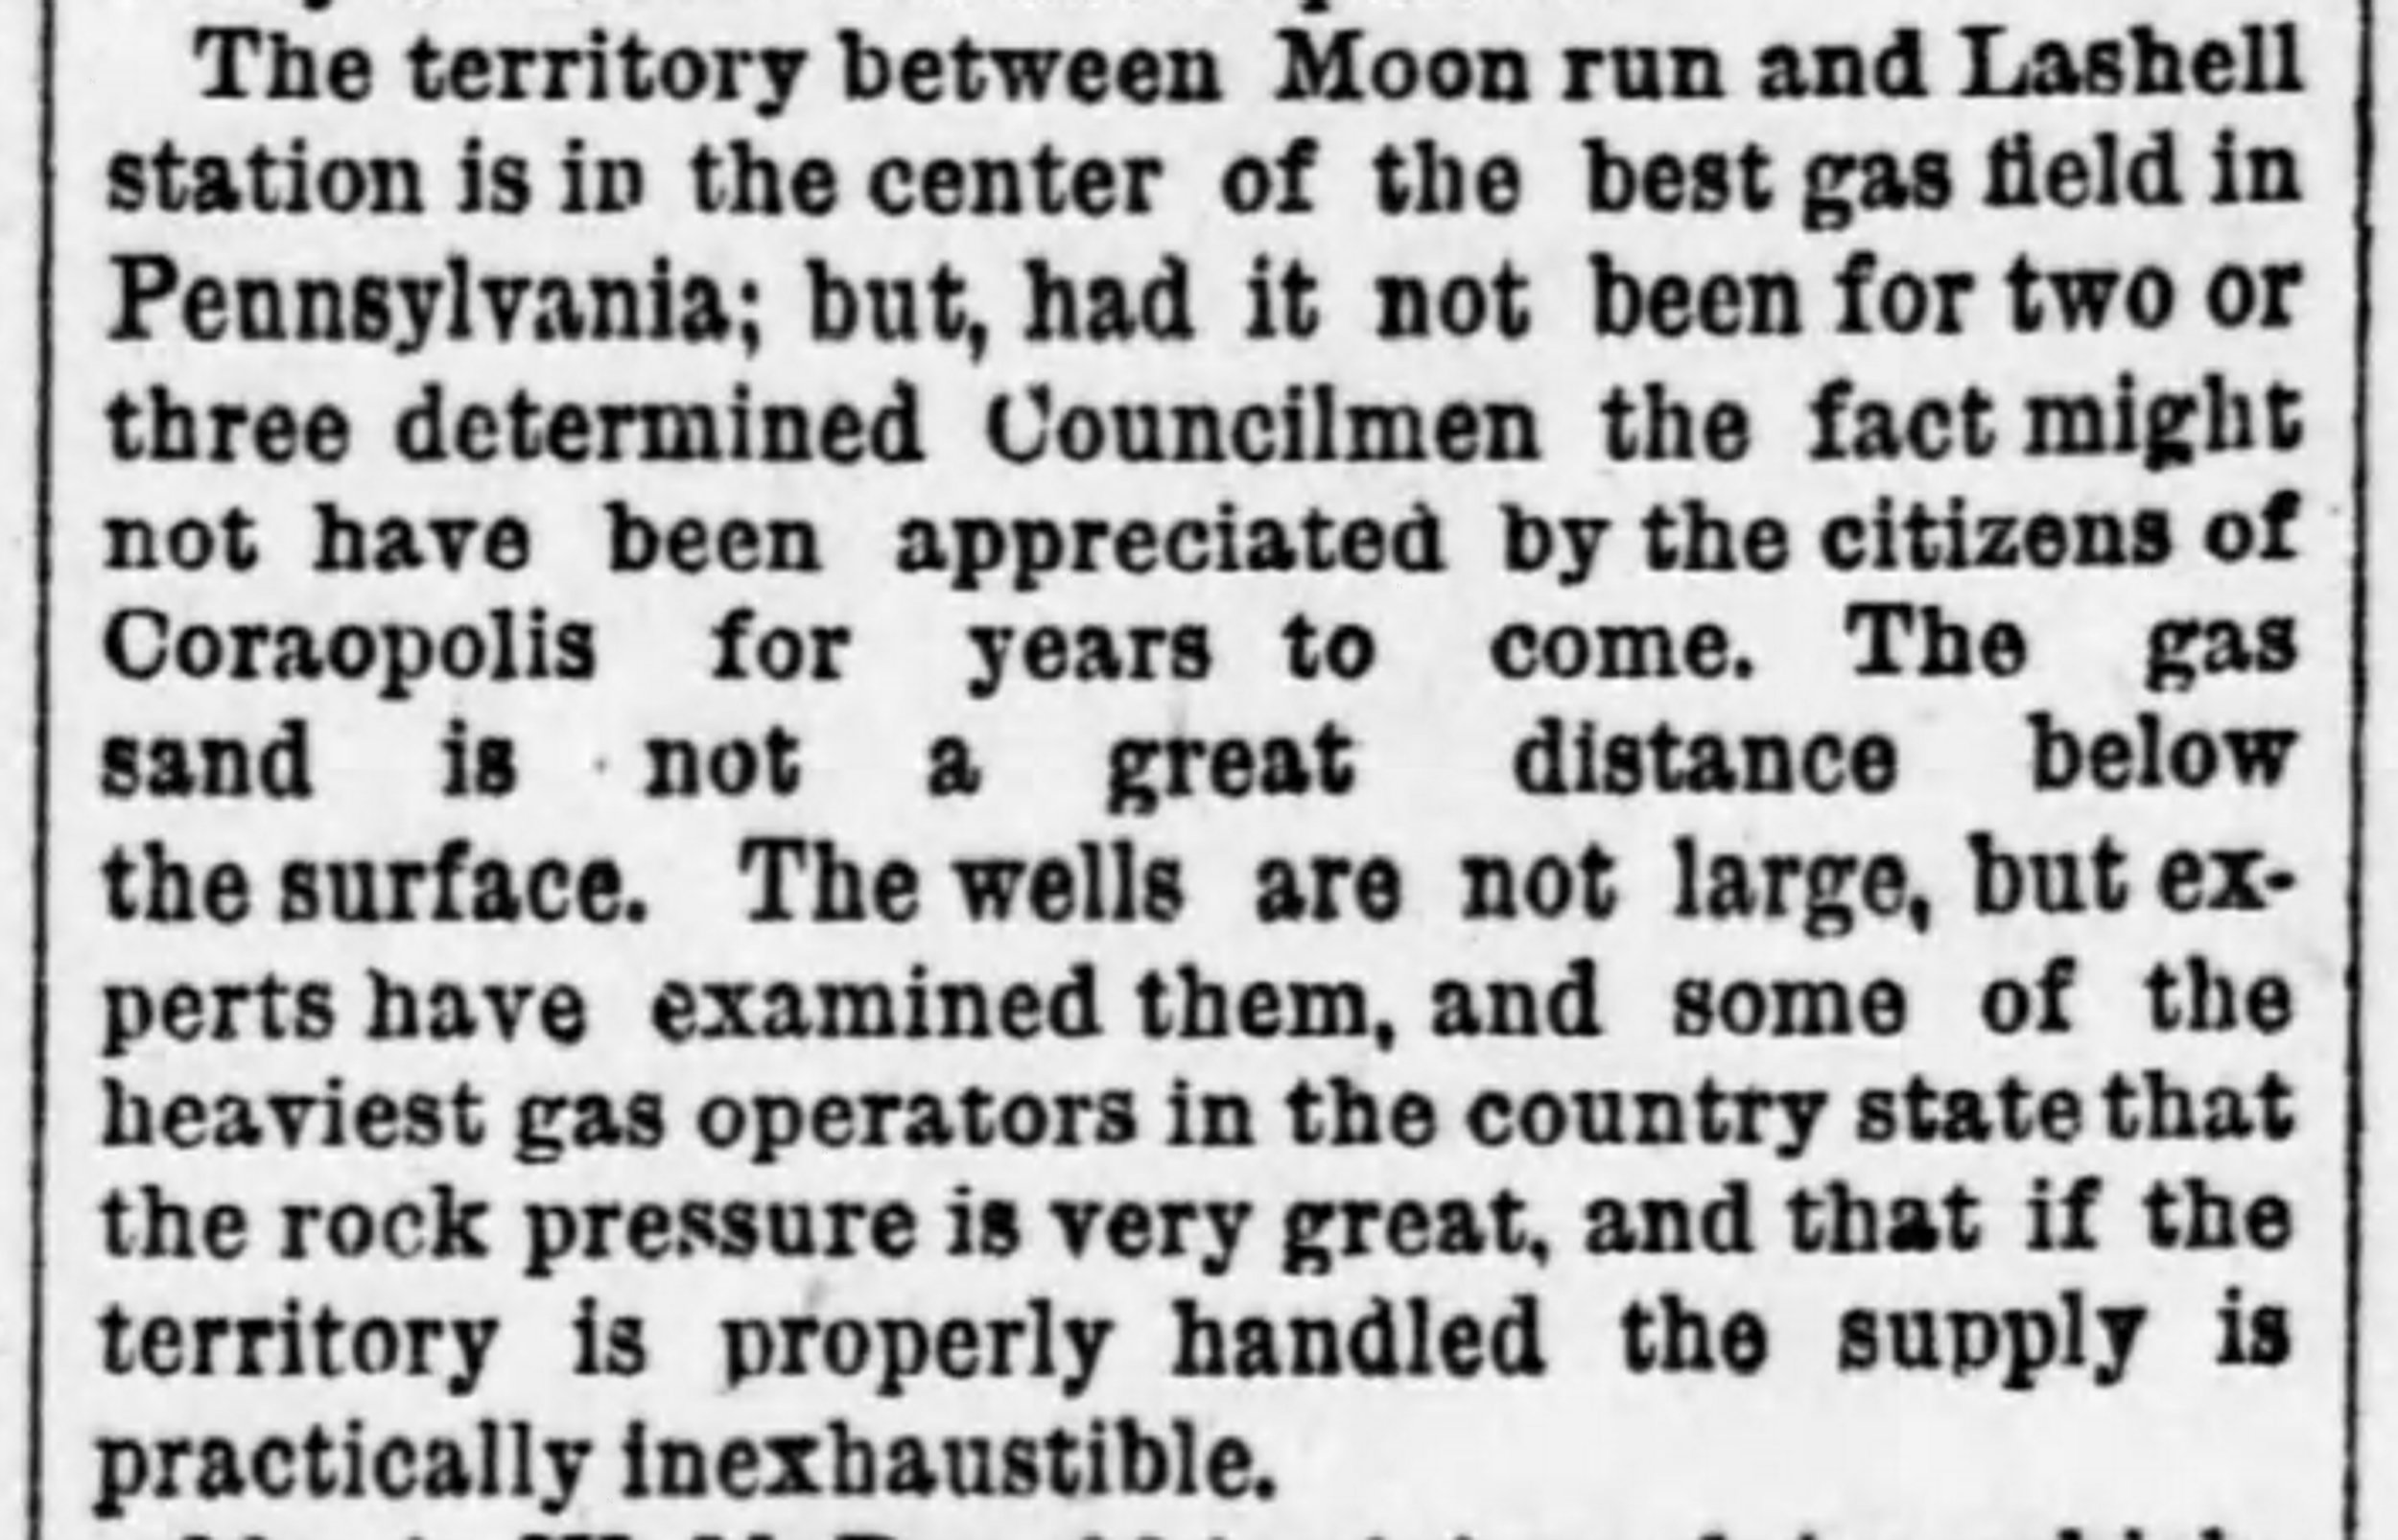 Pittsburgh Dispatch, January 5, 1889